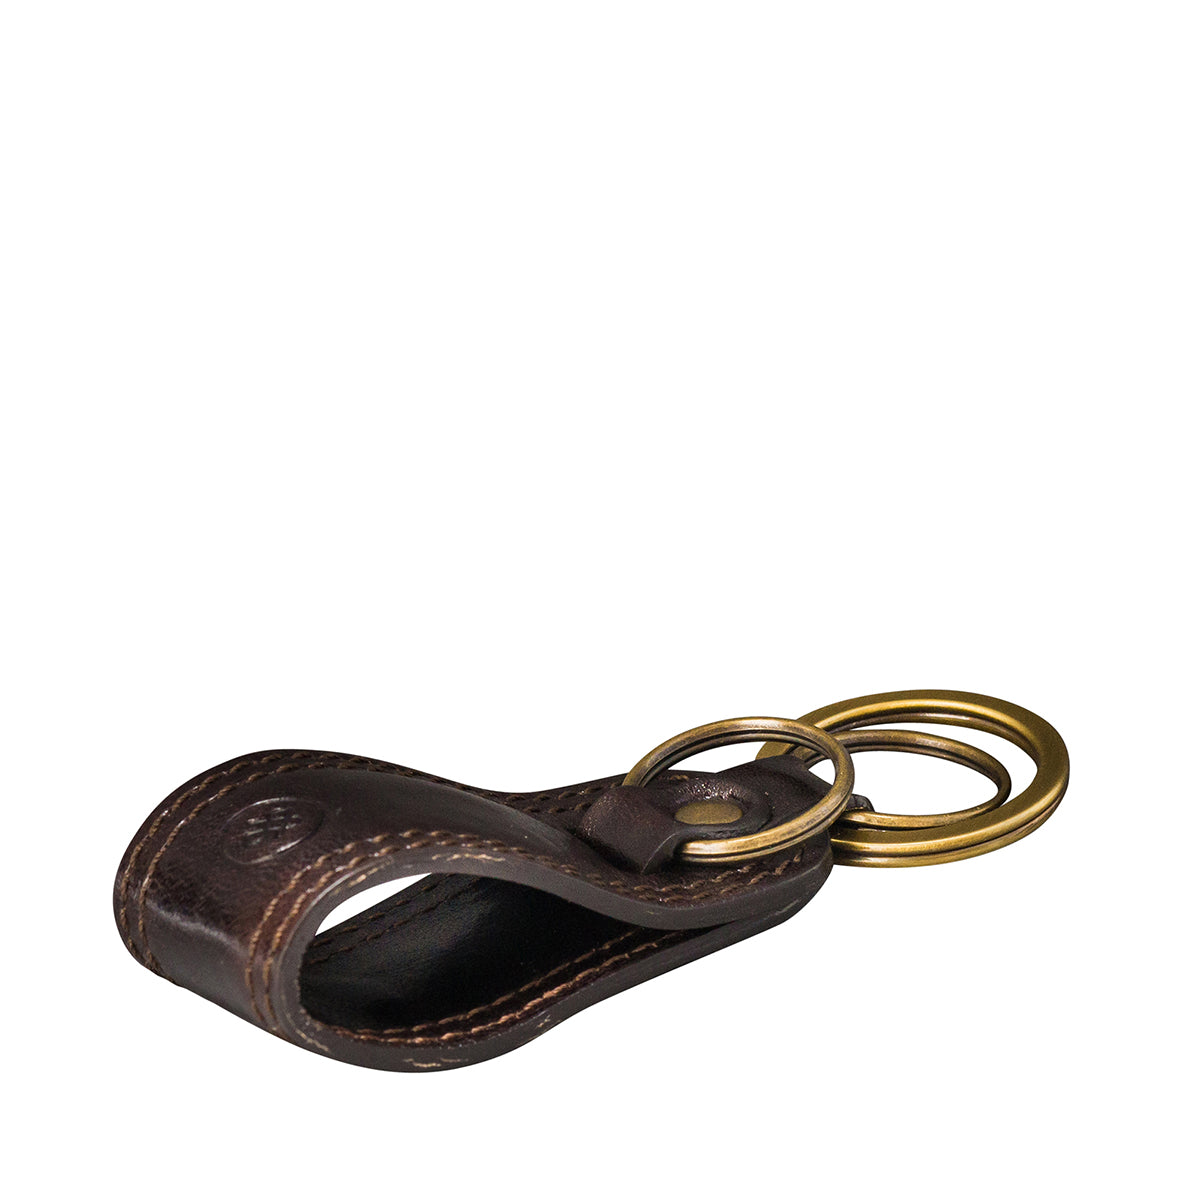 Image 3 of the 'Nepi' Dark Chocolate Veg-Tanned Leather Key Ring